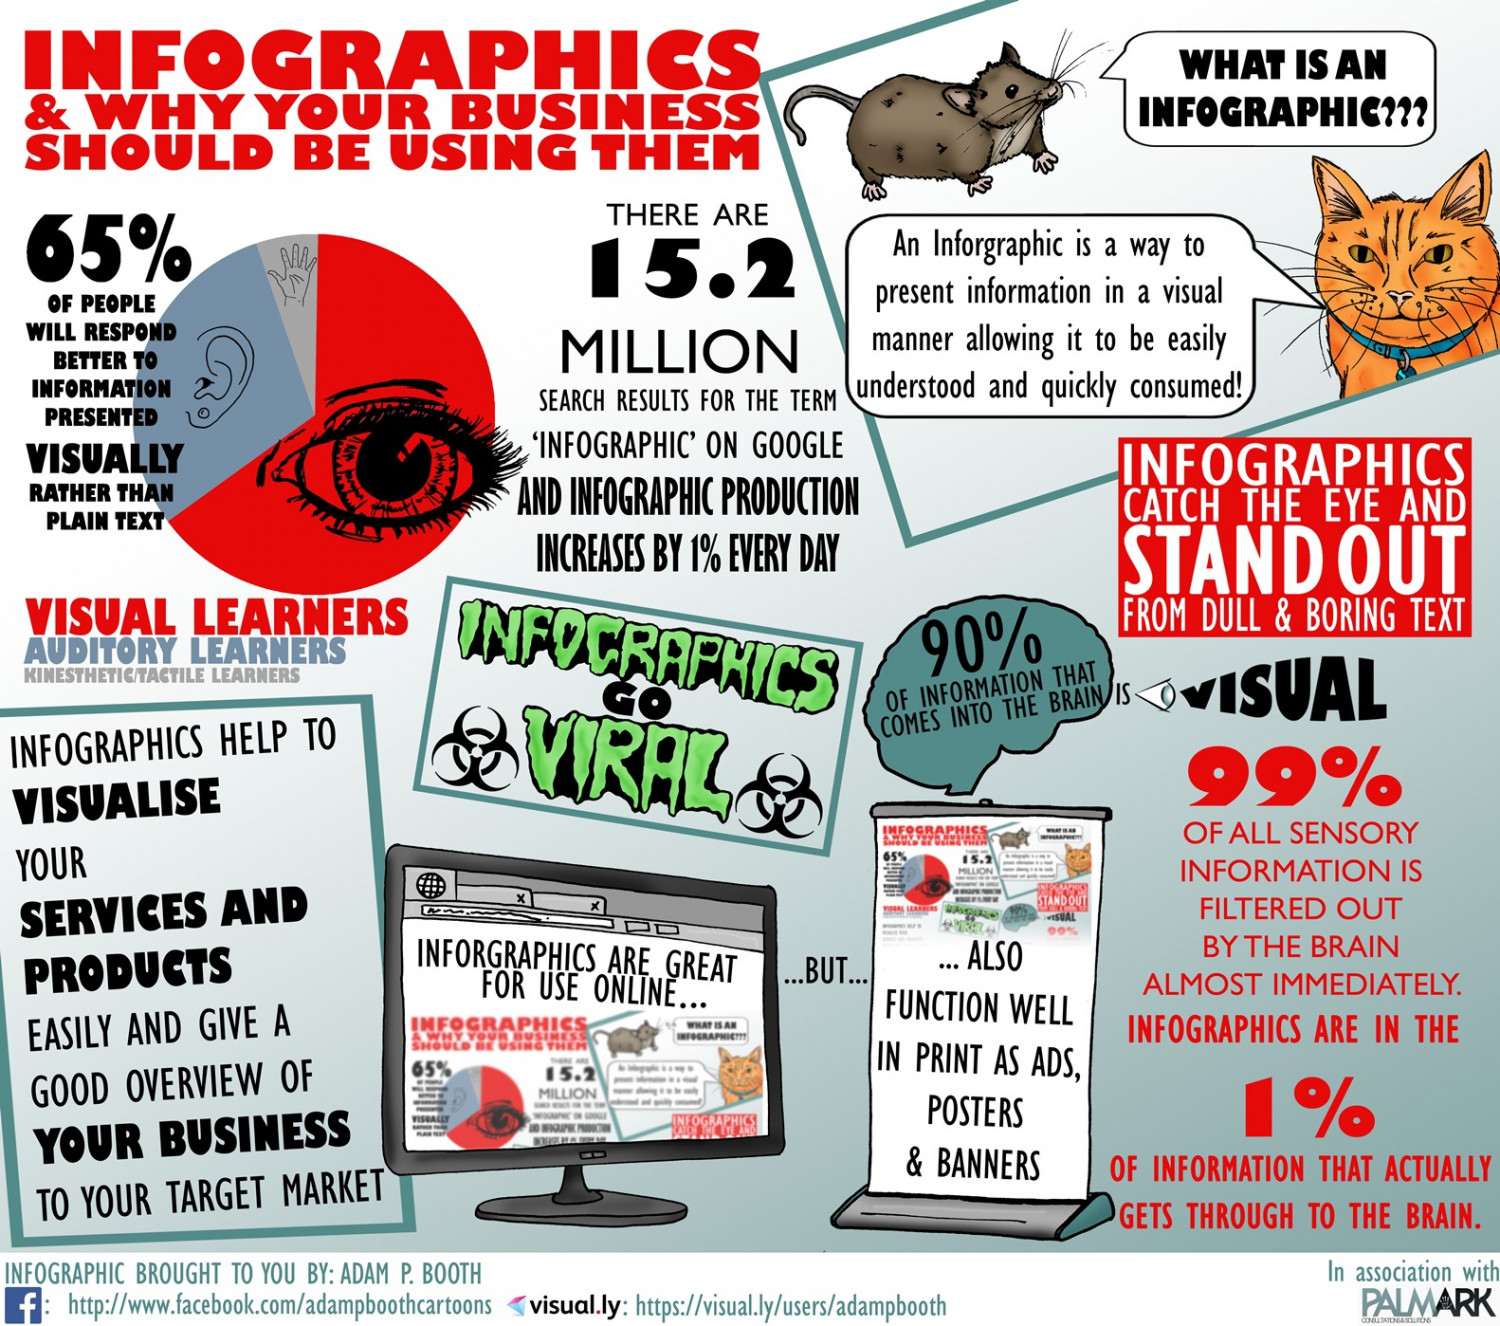 Infographics & why your business should be using them Infographic